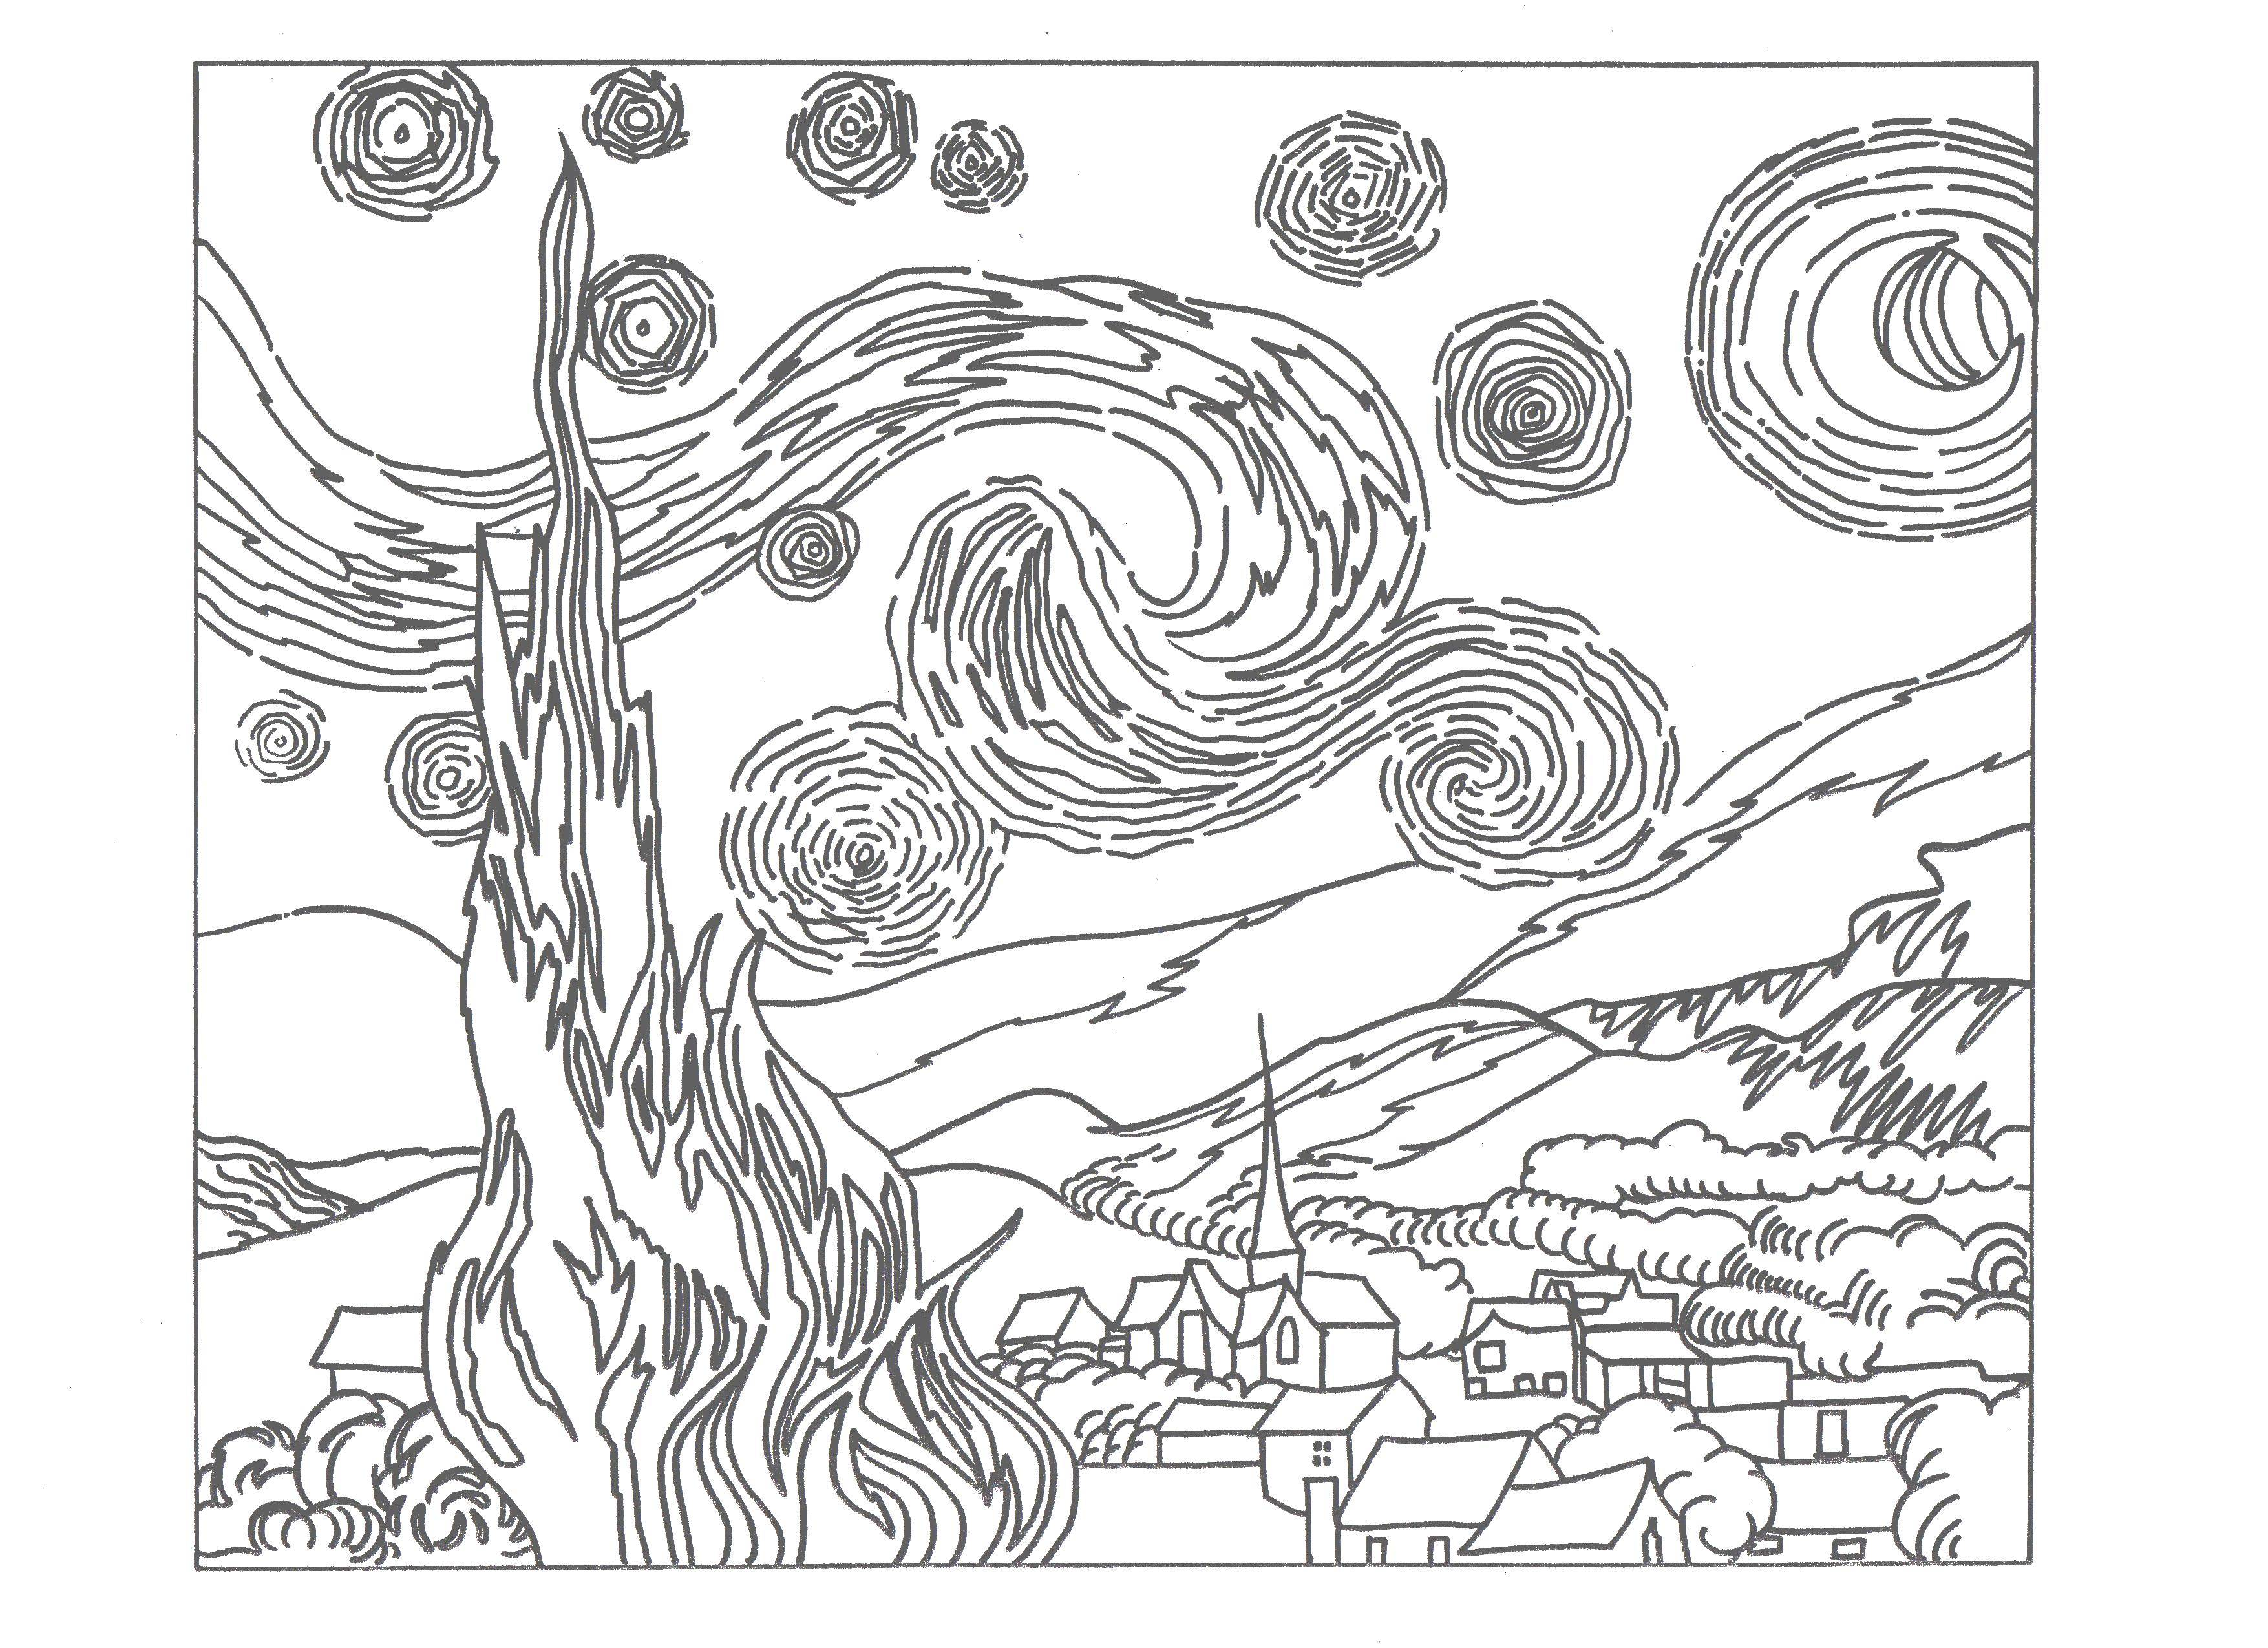 Coloring Starry night Download Van Gogh, painting, starry night.  Print ,coloring,